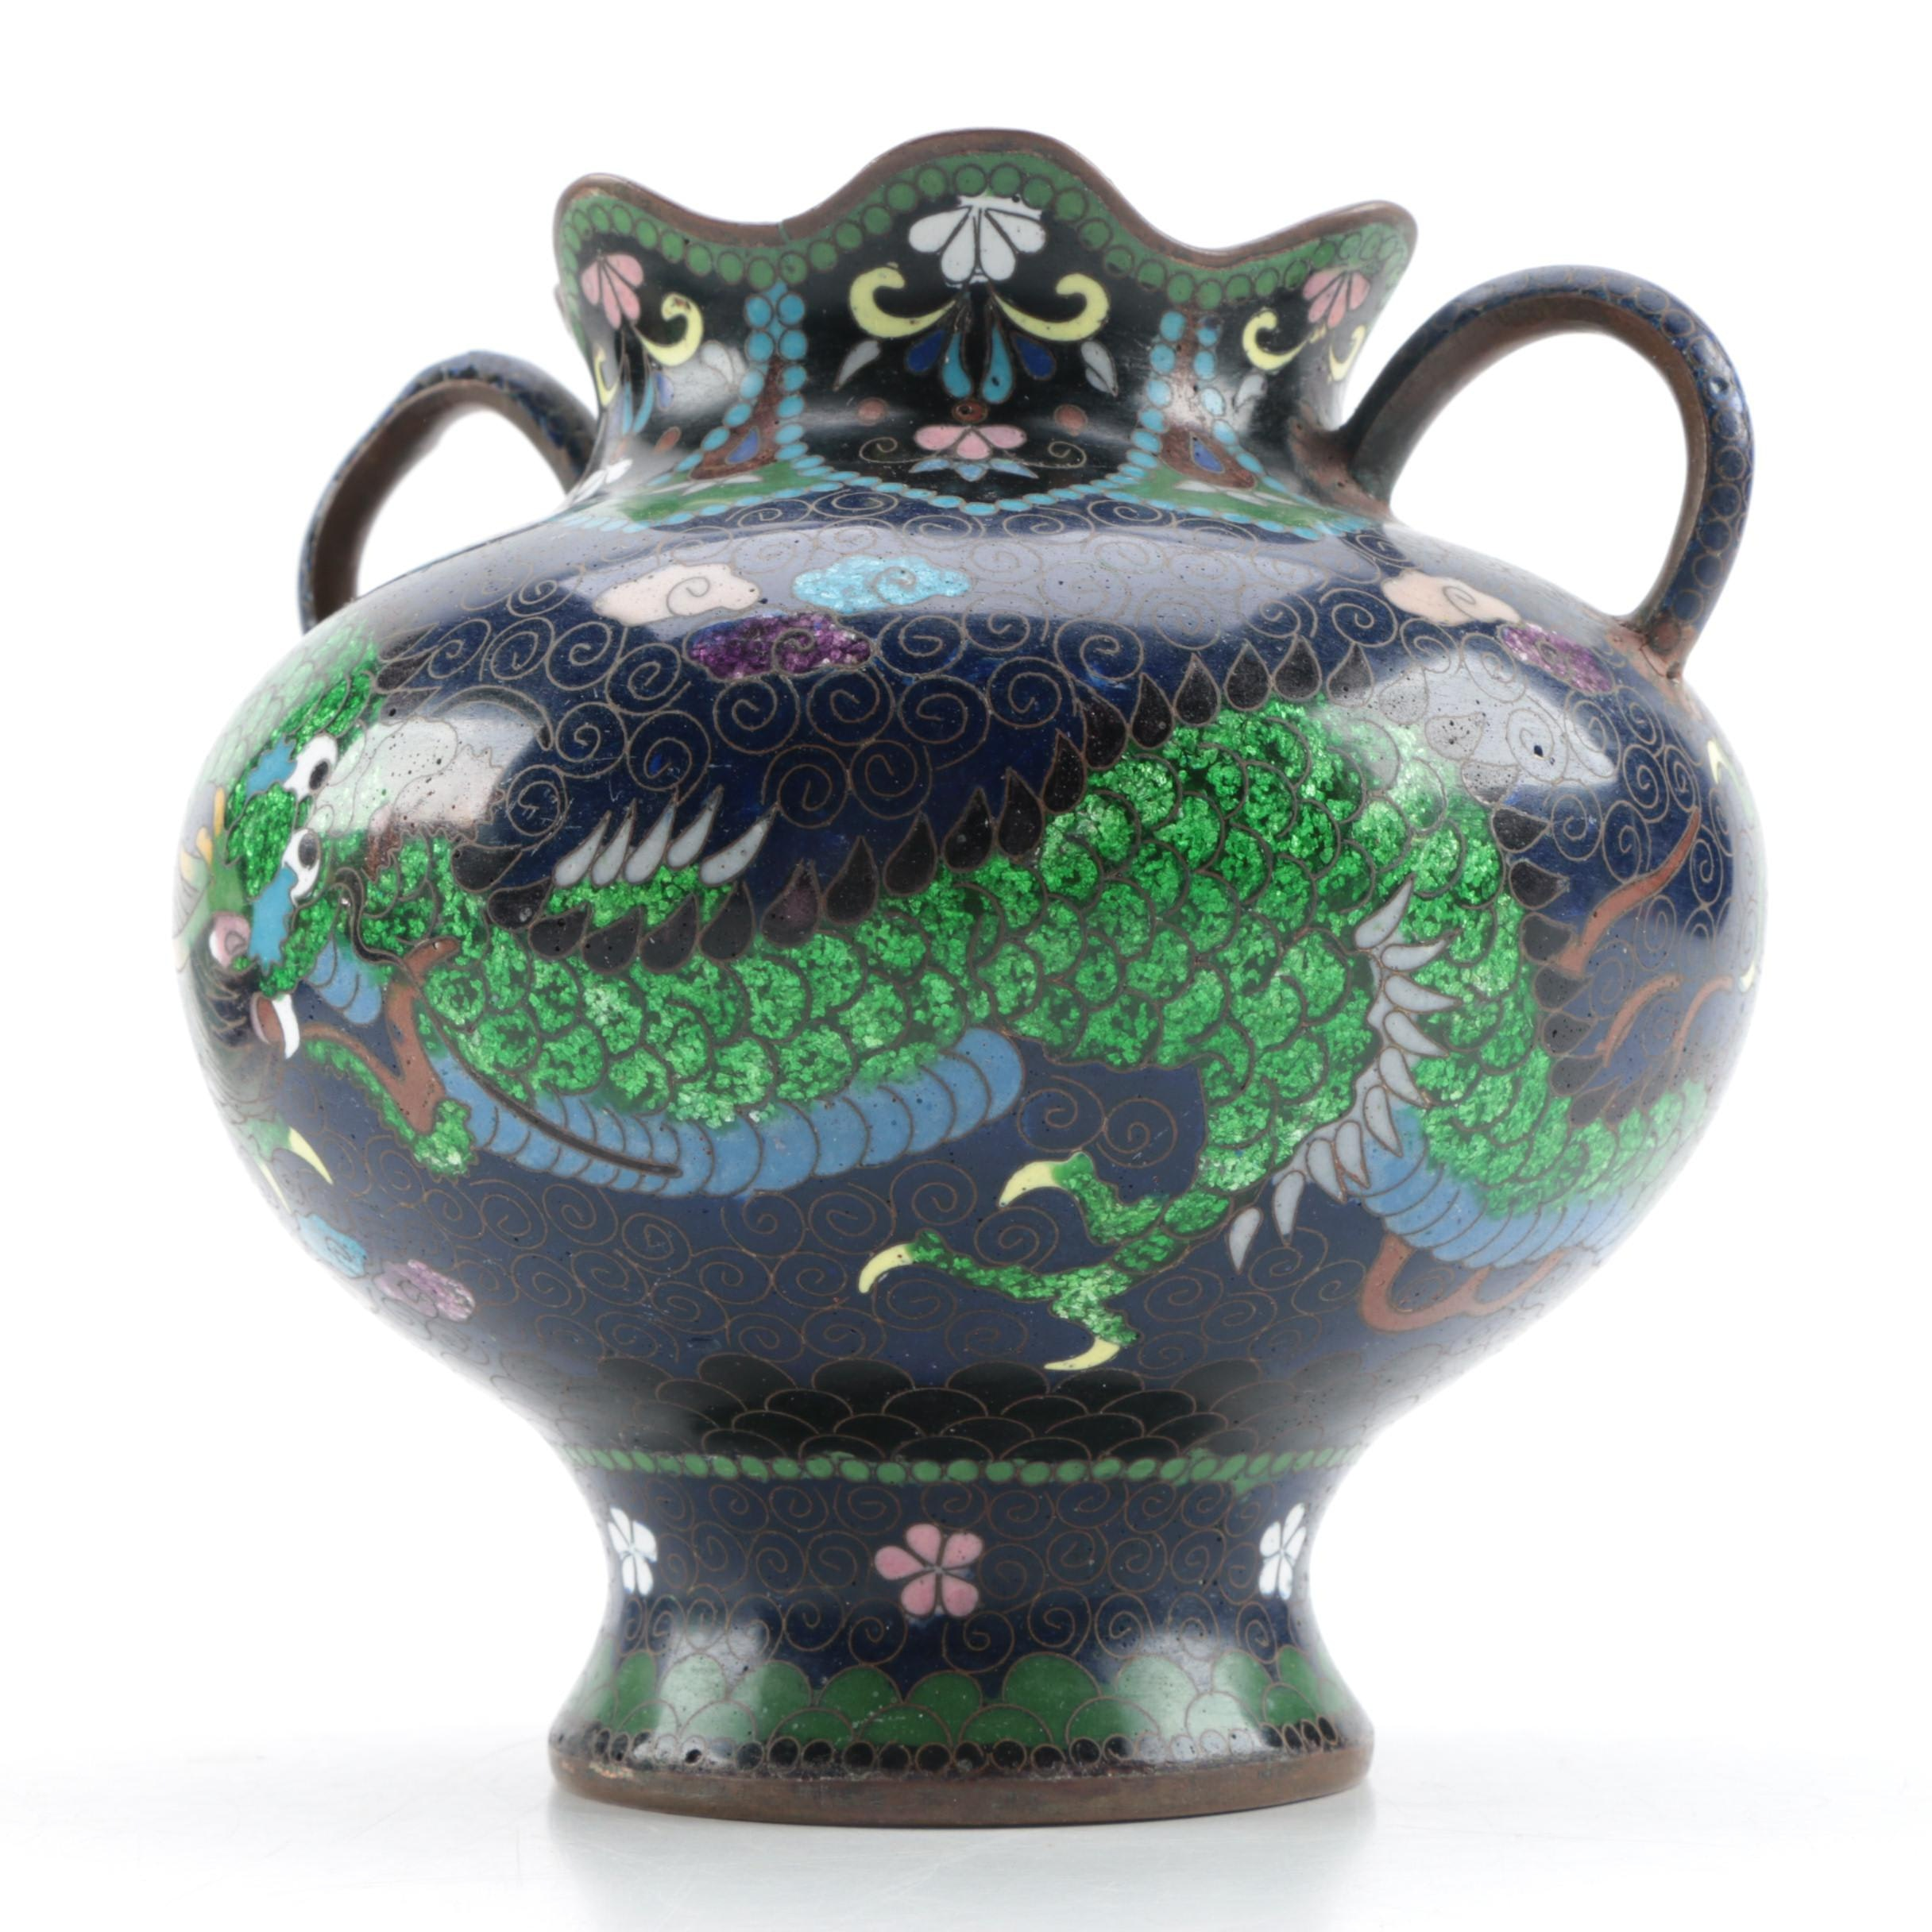 Vintage Chinese Cloisonne Enameled on Metal Vase